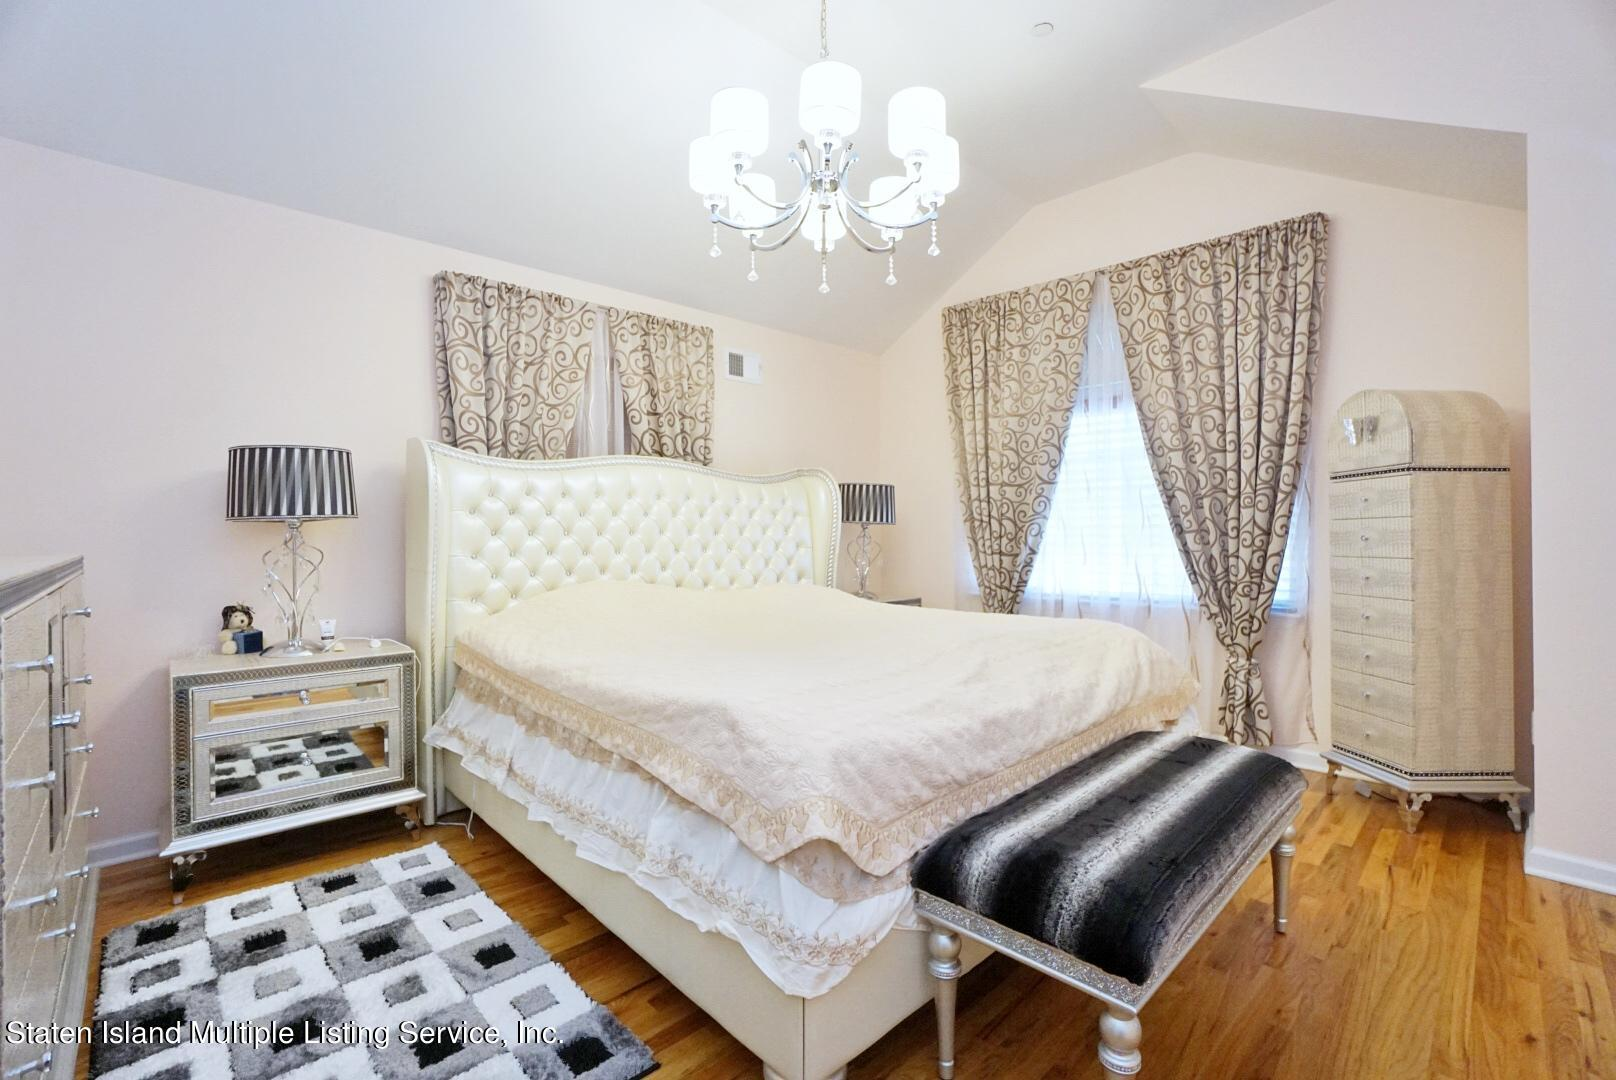 Single Family - Detached 171 Benziger Avenue  Staten Island, NY 10301, MLS-1145235-19